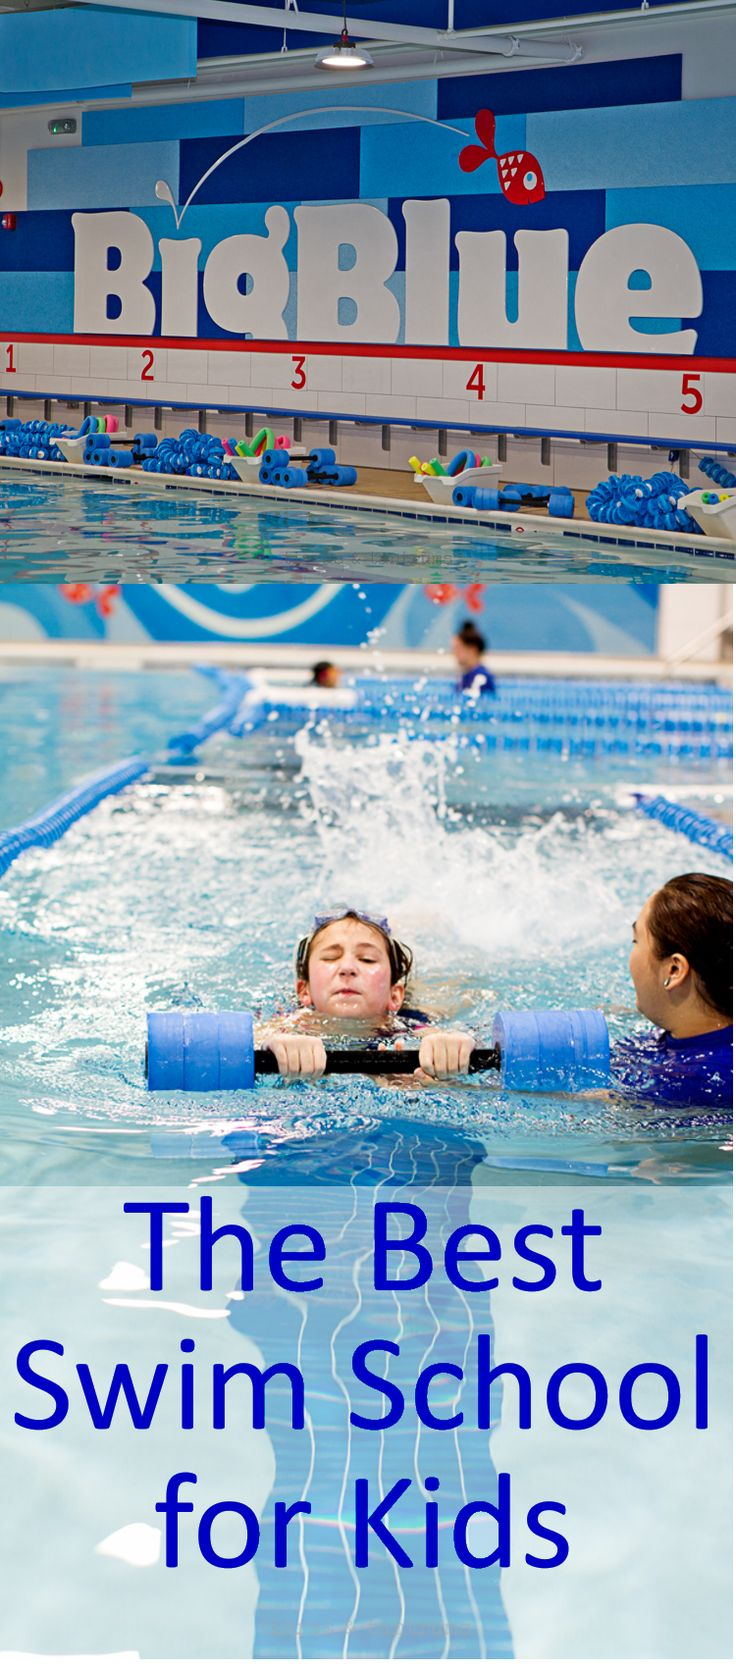 Swimming lessons for my kiddos are important, because this important life skill is with them forever! AD #BigBlueSwimSchool Come read about my daughter's awesome swim lesson at Big Blue Swim School! #swimminglessons #Swimming | https://www.tiarastantrums.com/blog/swim-lessons-and-big-blue-swim-school